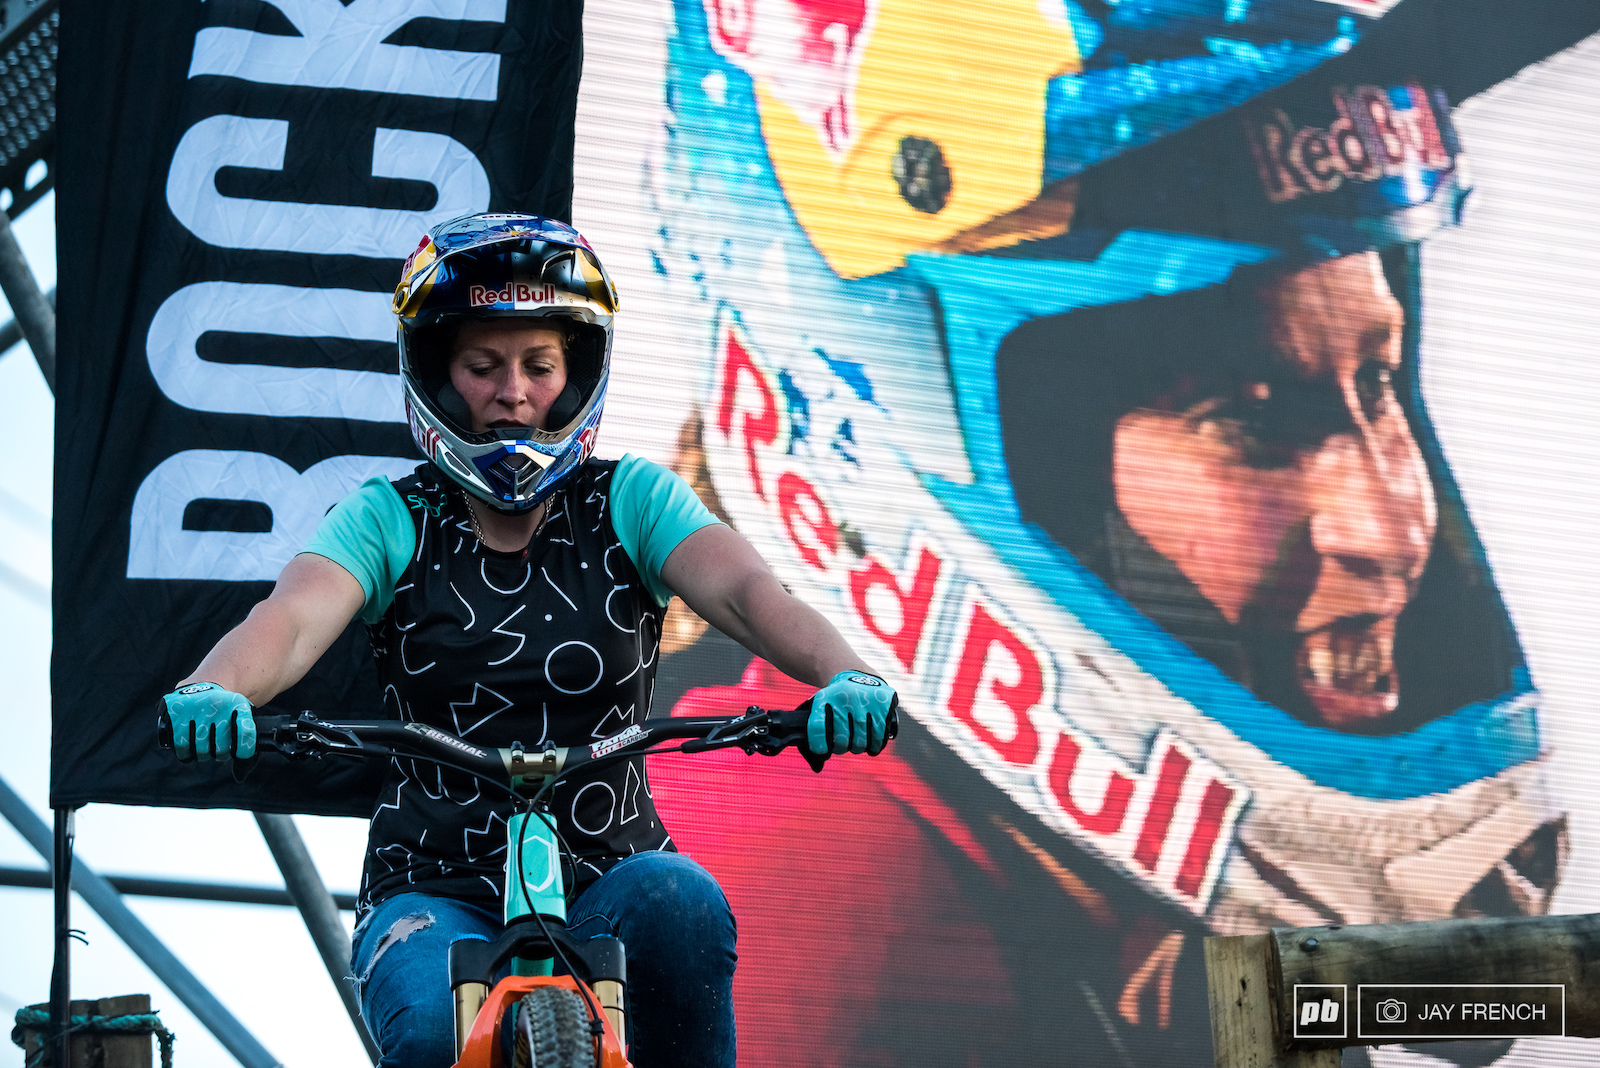 Jill sits patiently awaiting her heat while the big screen behind her pays tribute to her Queen of Crankworx.